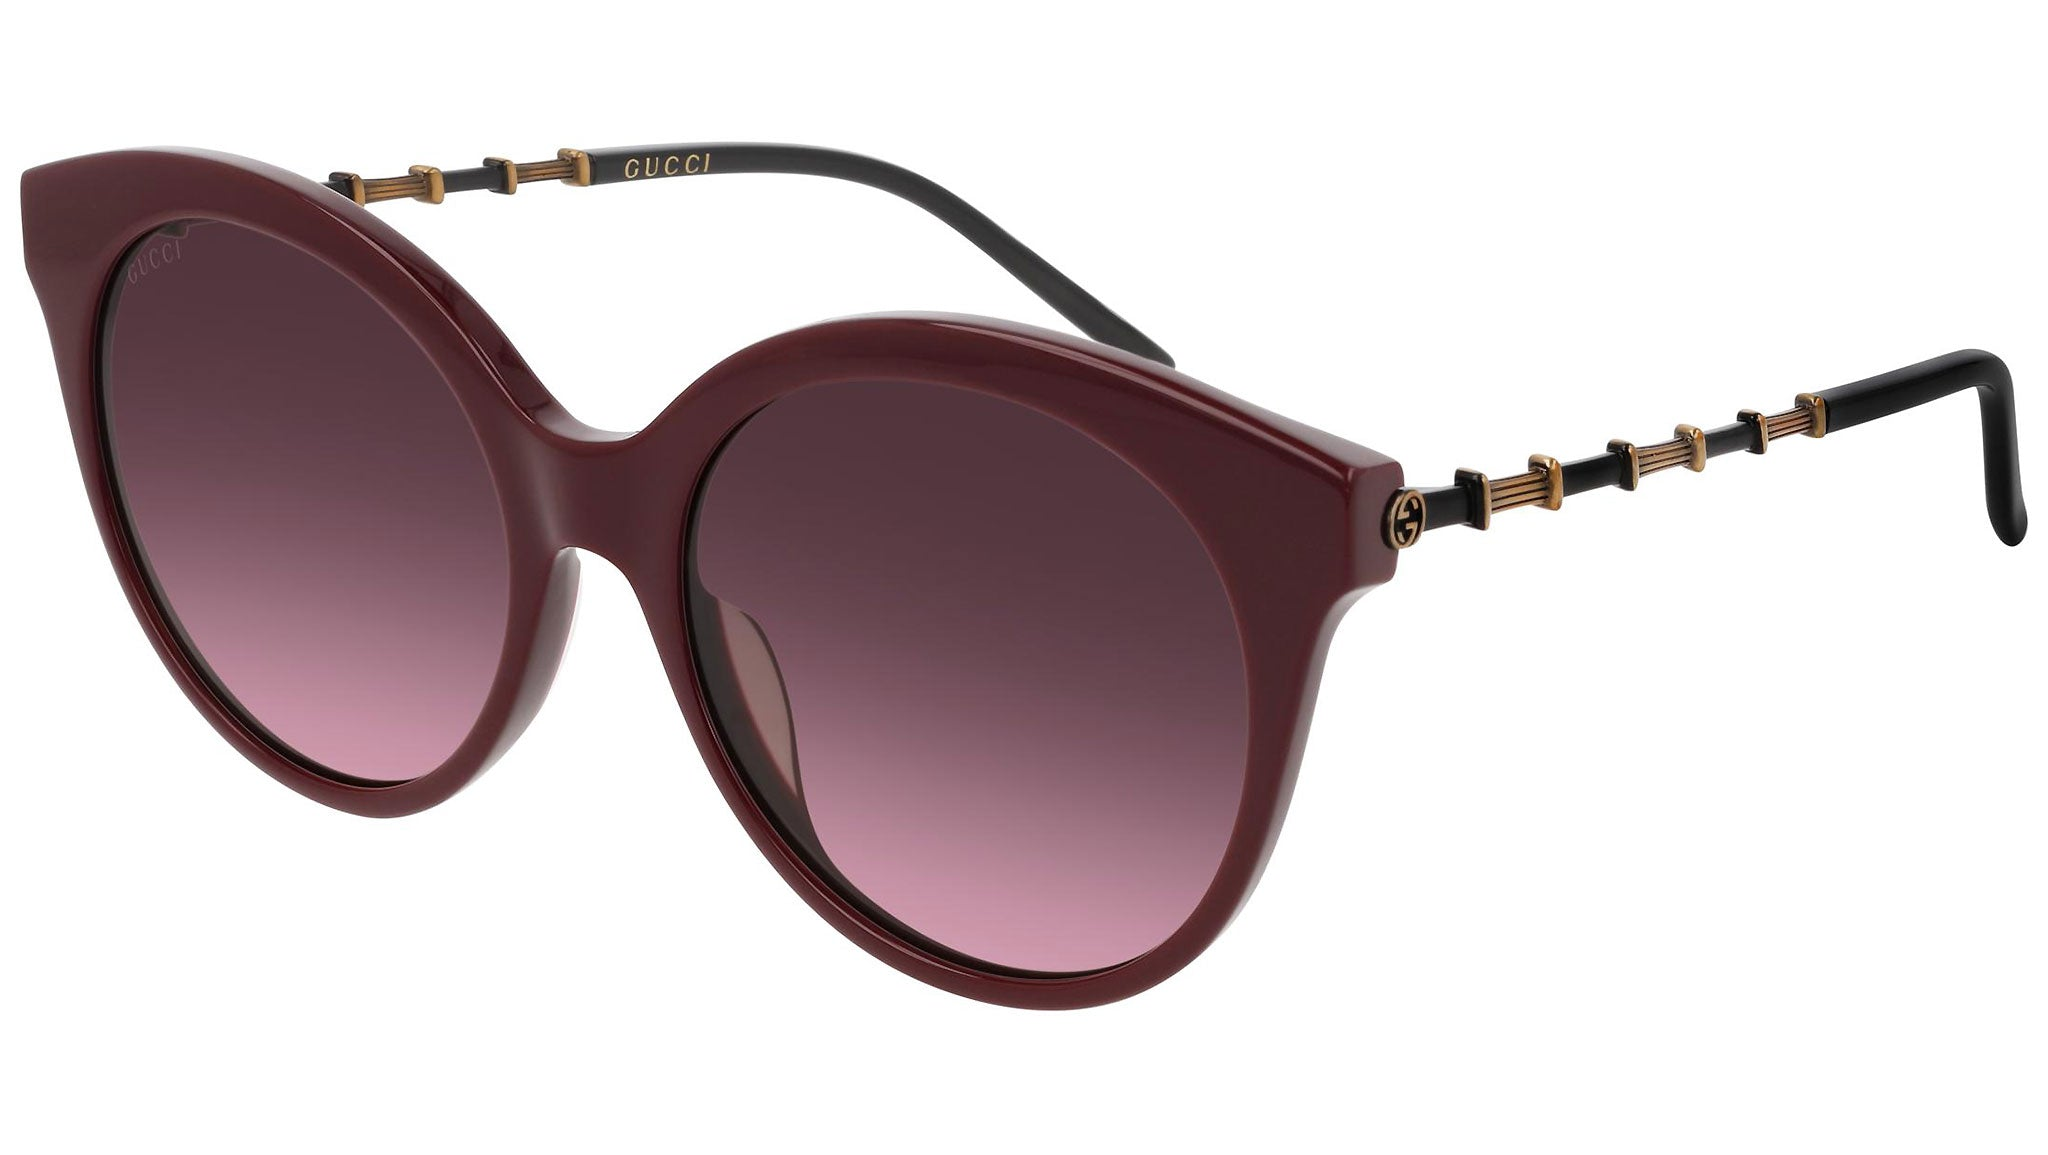 GG0653S shiny burgundy and double violet/nude